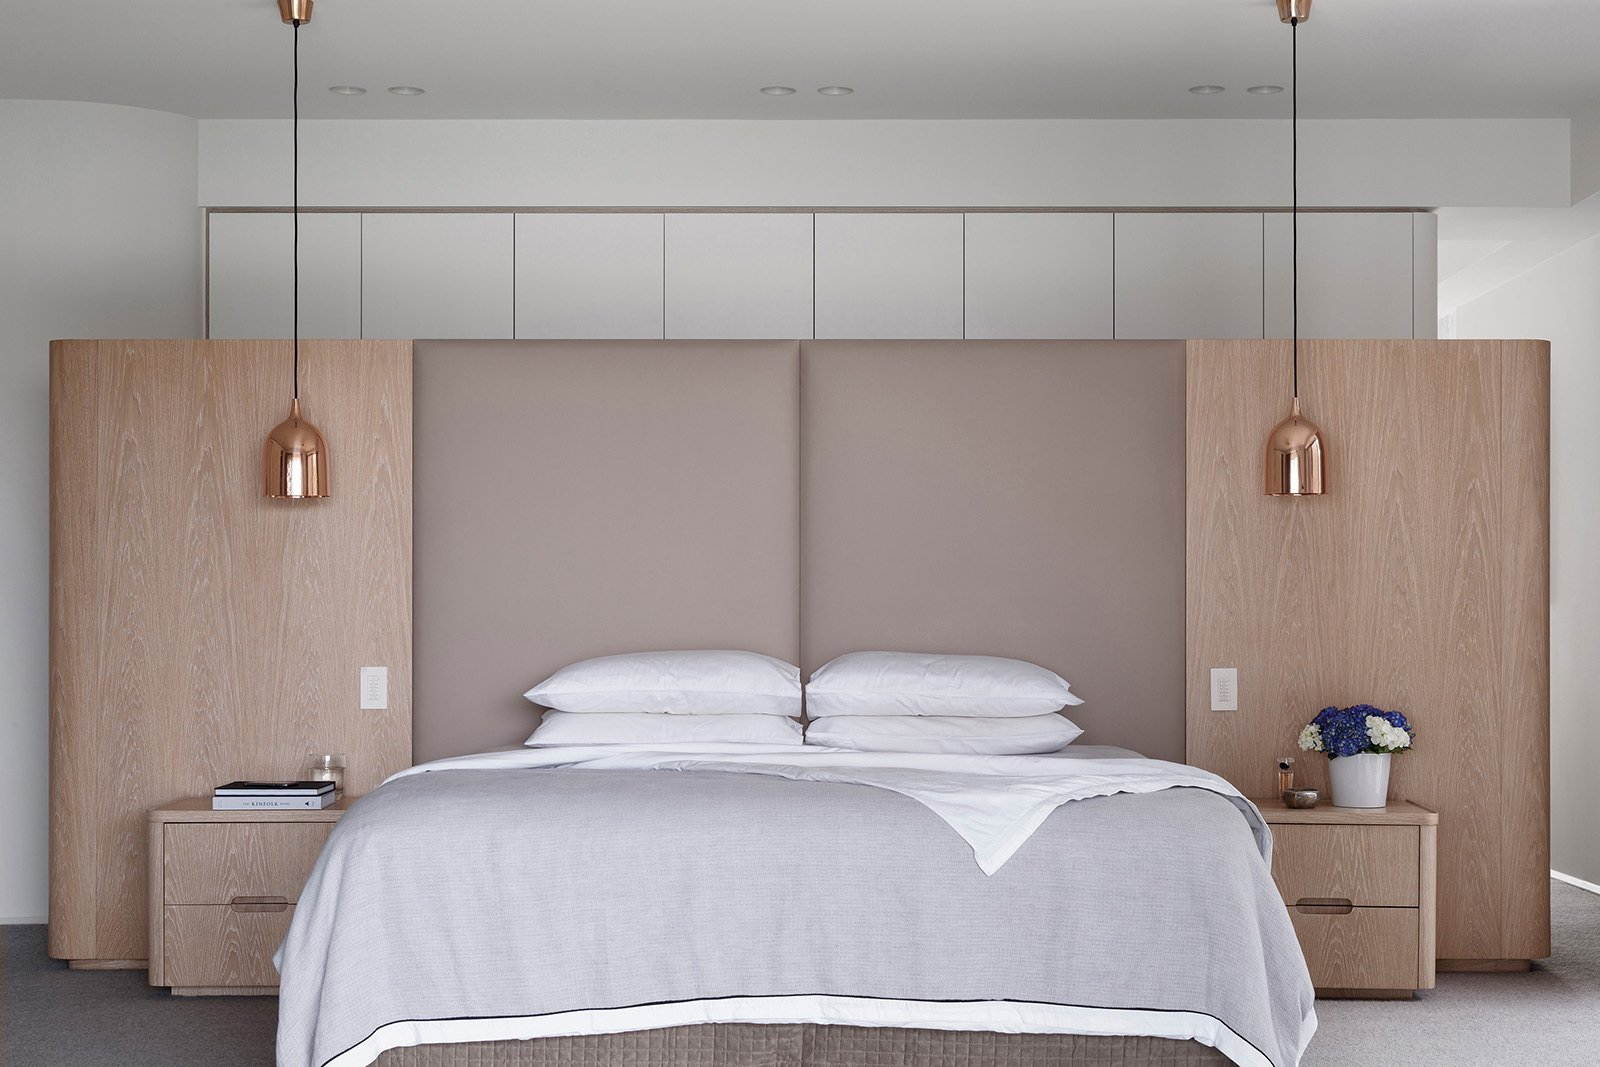 50 bright ideas for bedroom ceiling